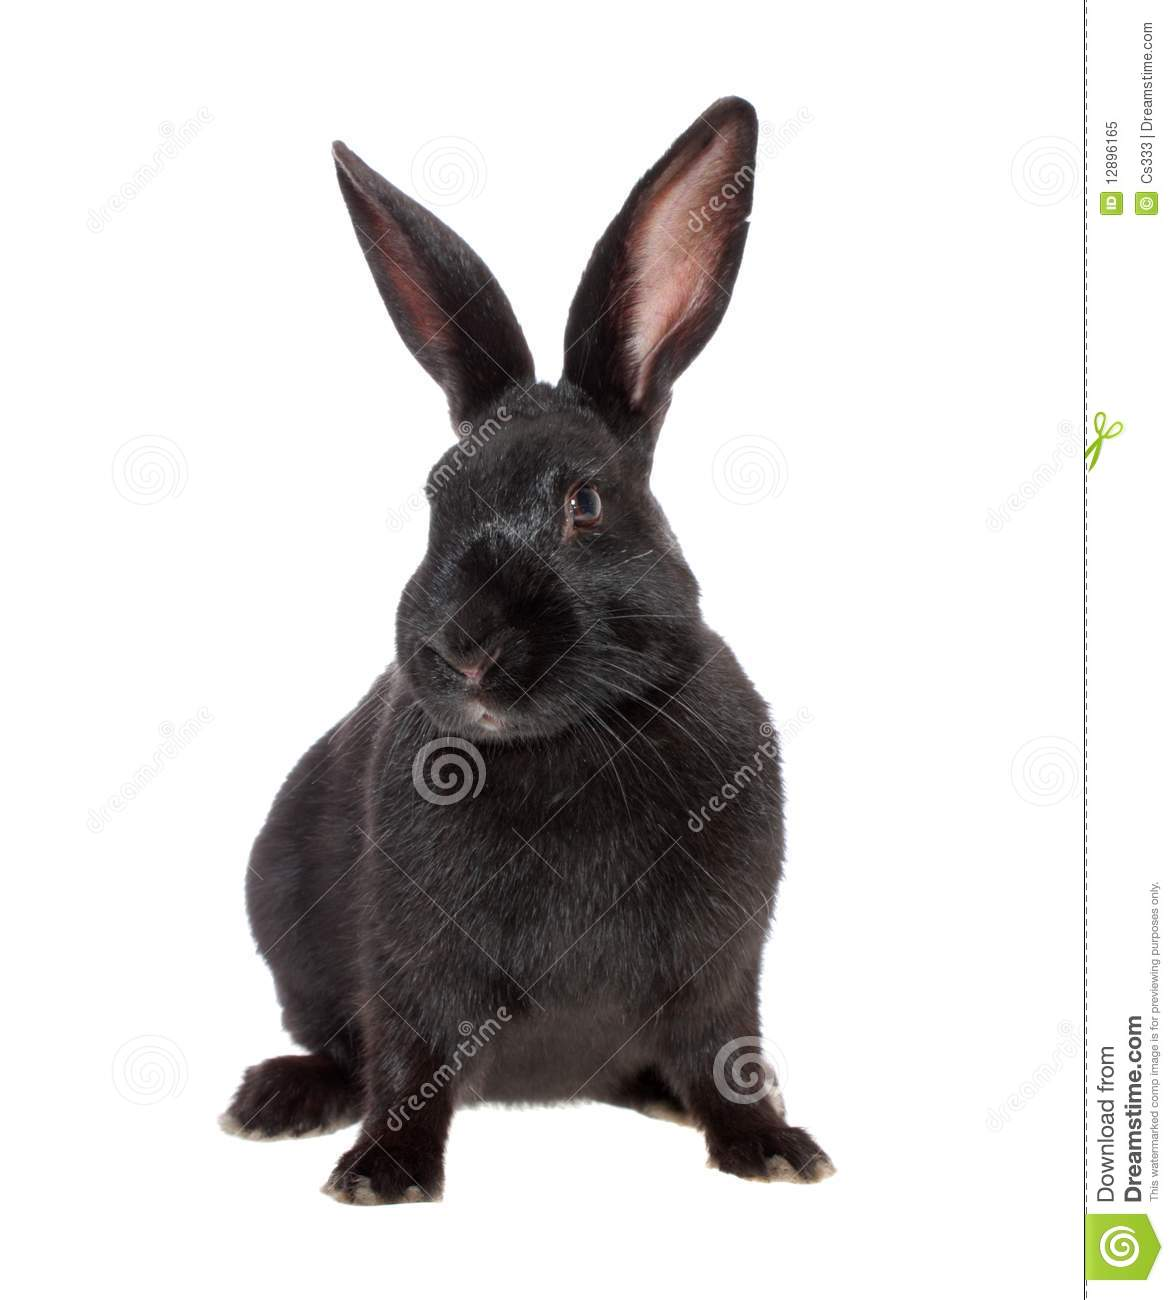 Black Rabbit, Isolated. Royalty Free Stock Photo - Image: 12896165